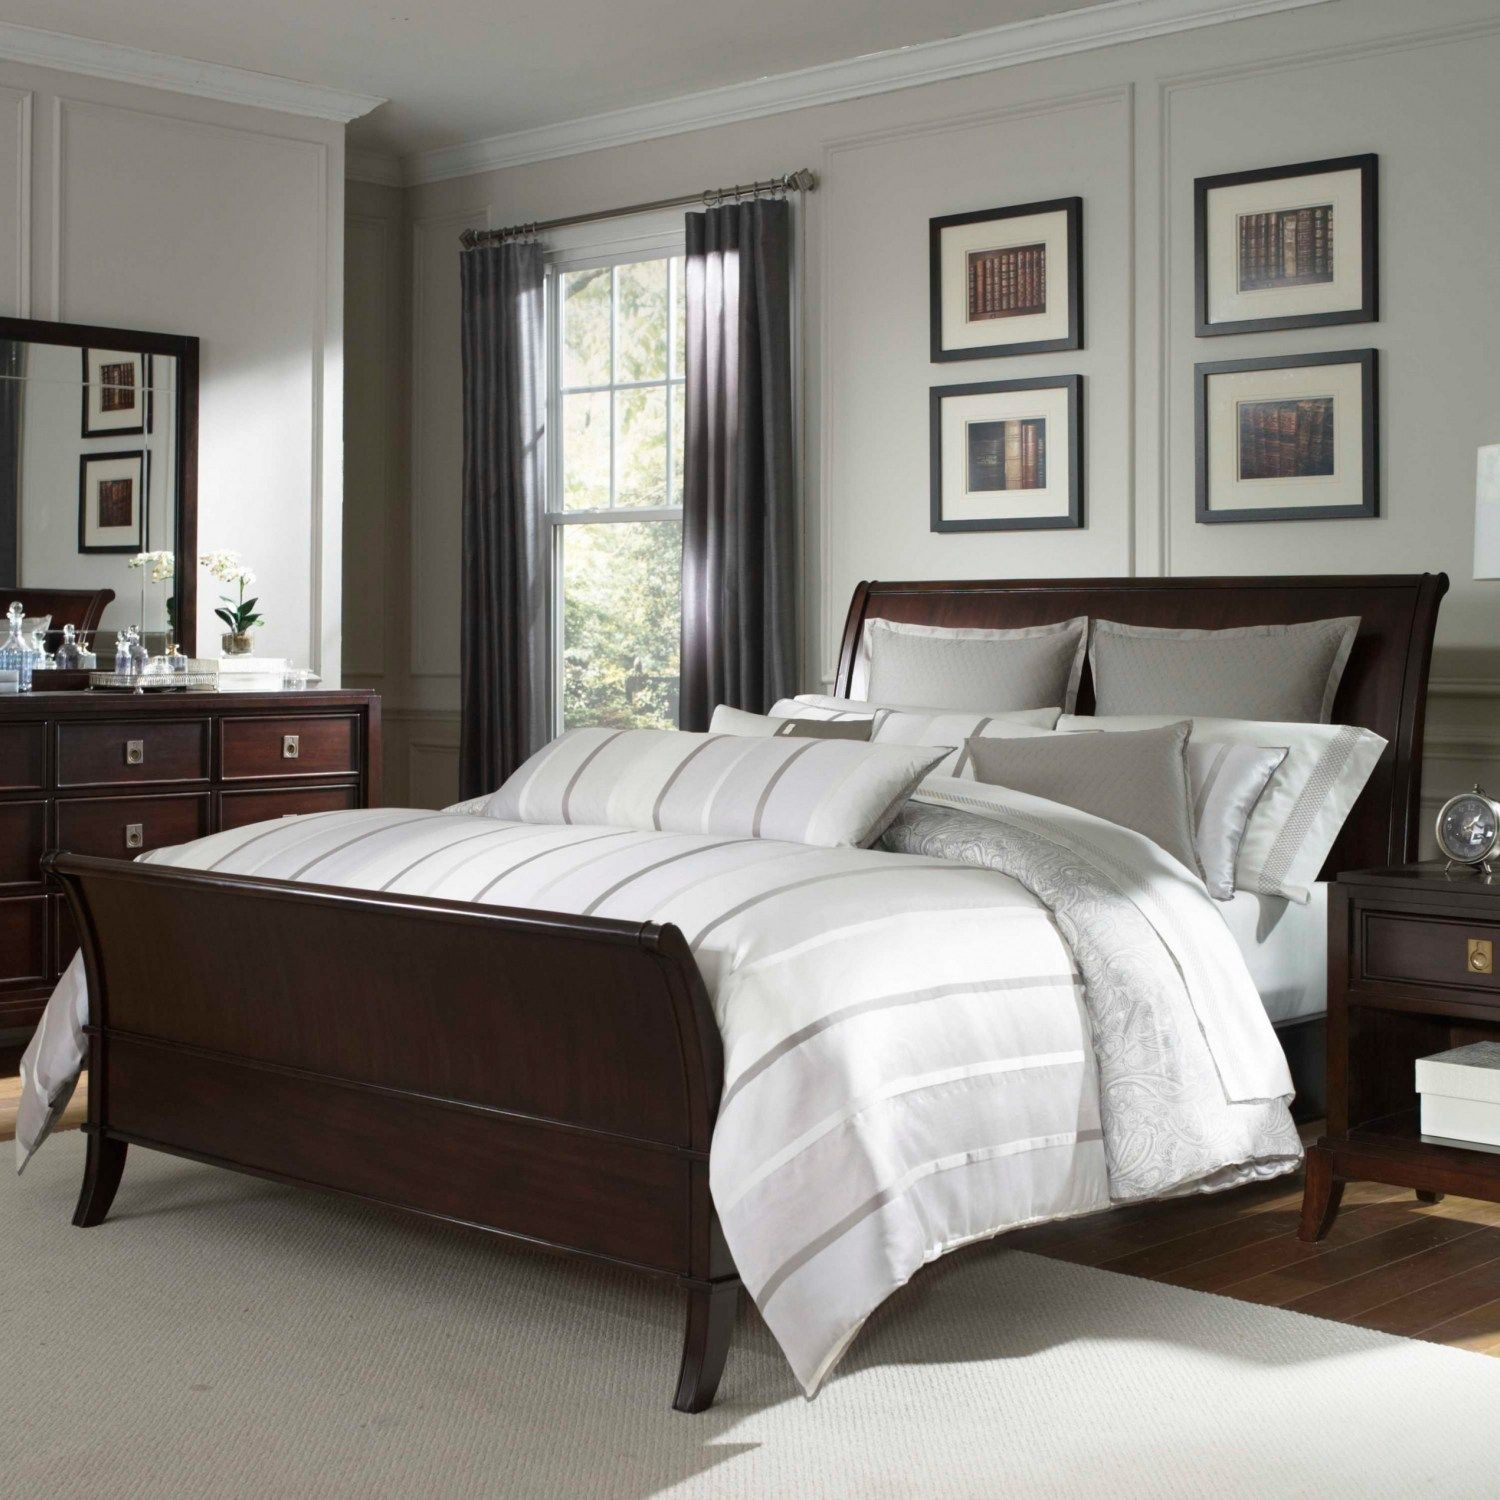 Pin by Katie Yallaly on room ideas Brown furniture